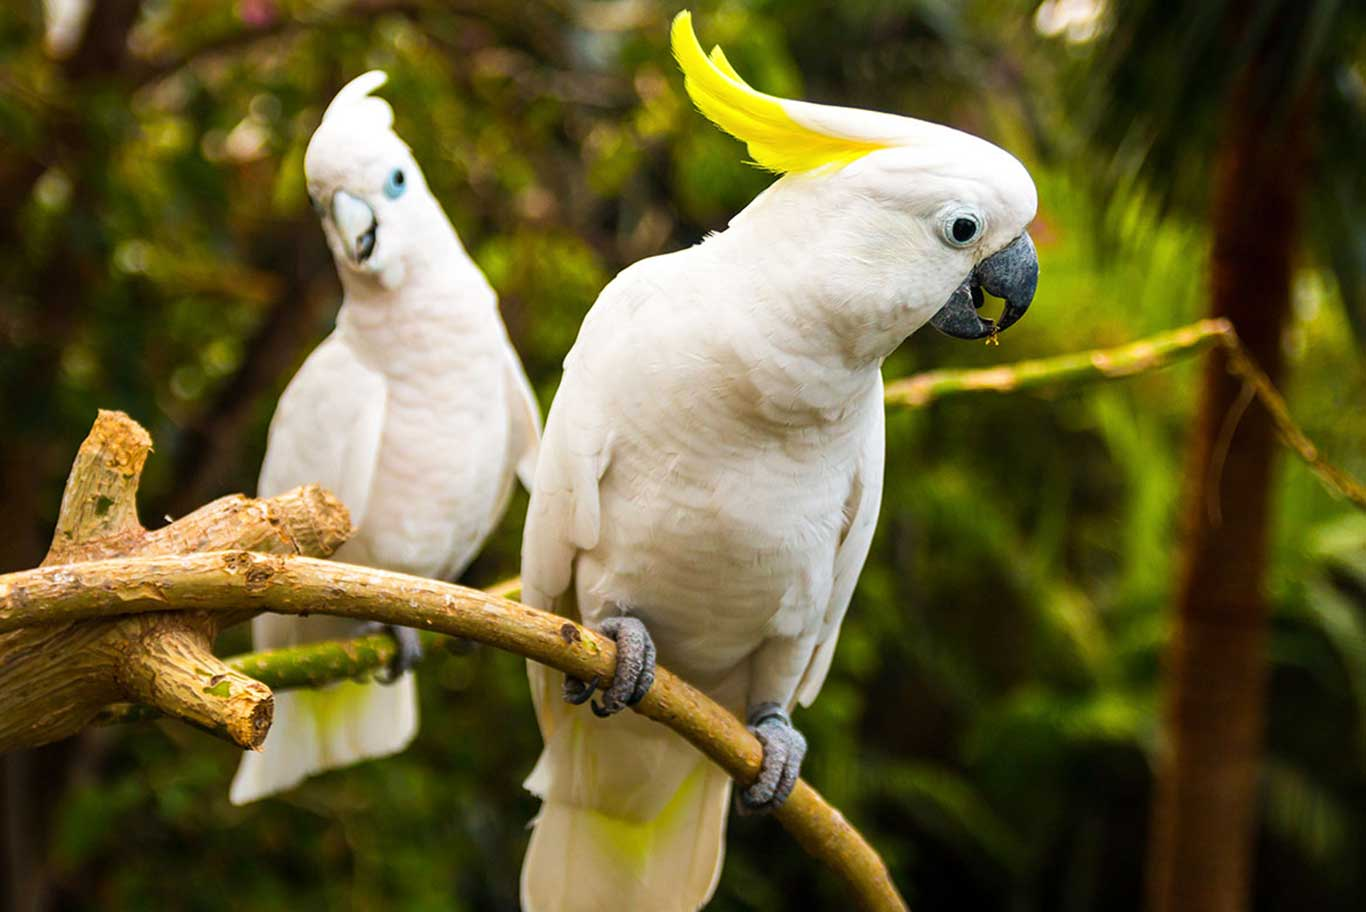 A pair of white parrots